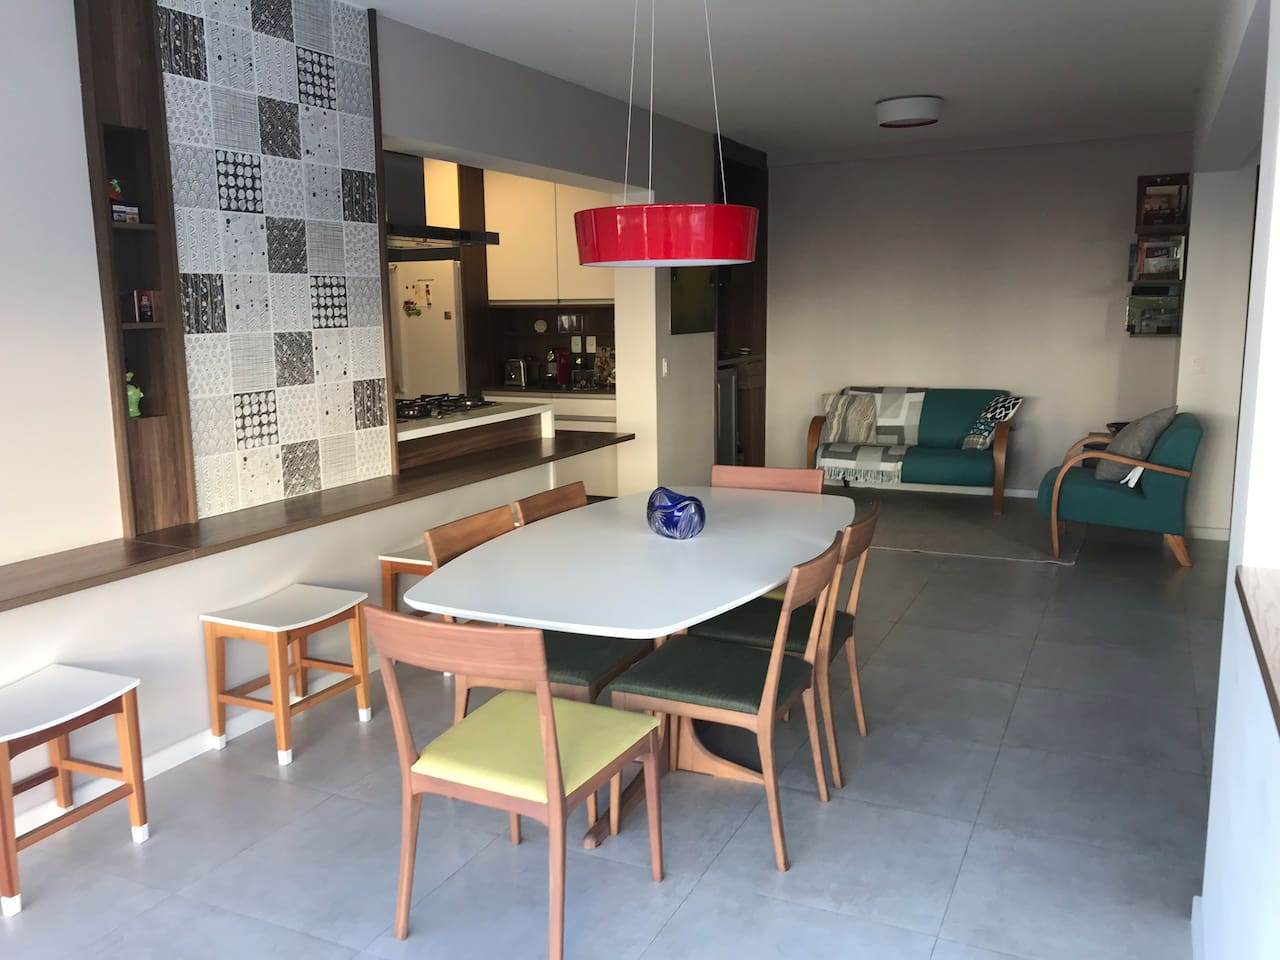 Dinning and living room. Clean, modern, very confortable, lightfull with one glass wall. All new!